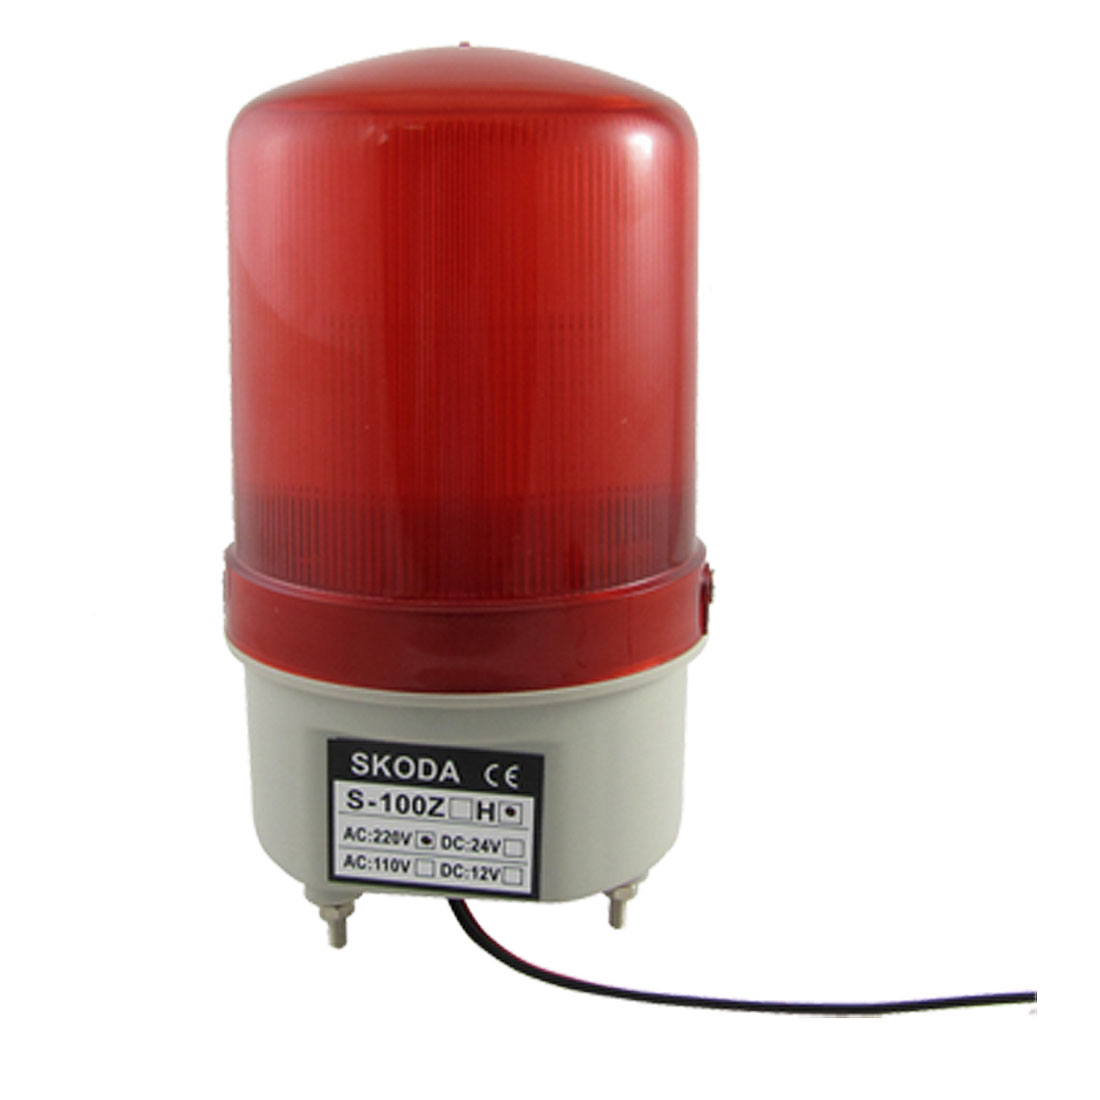 Red Flash LED Industry Signal Tower Buzzer Sound Alarm Light Lamp AC